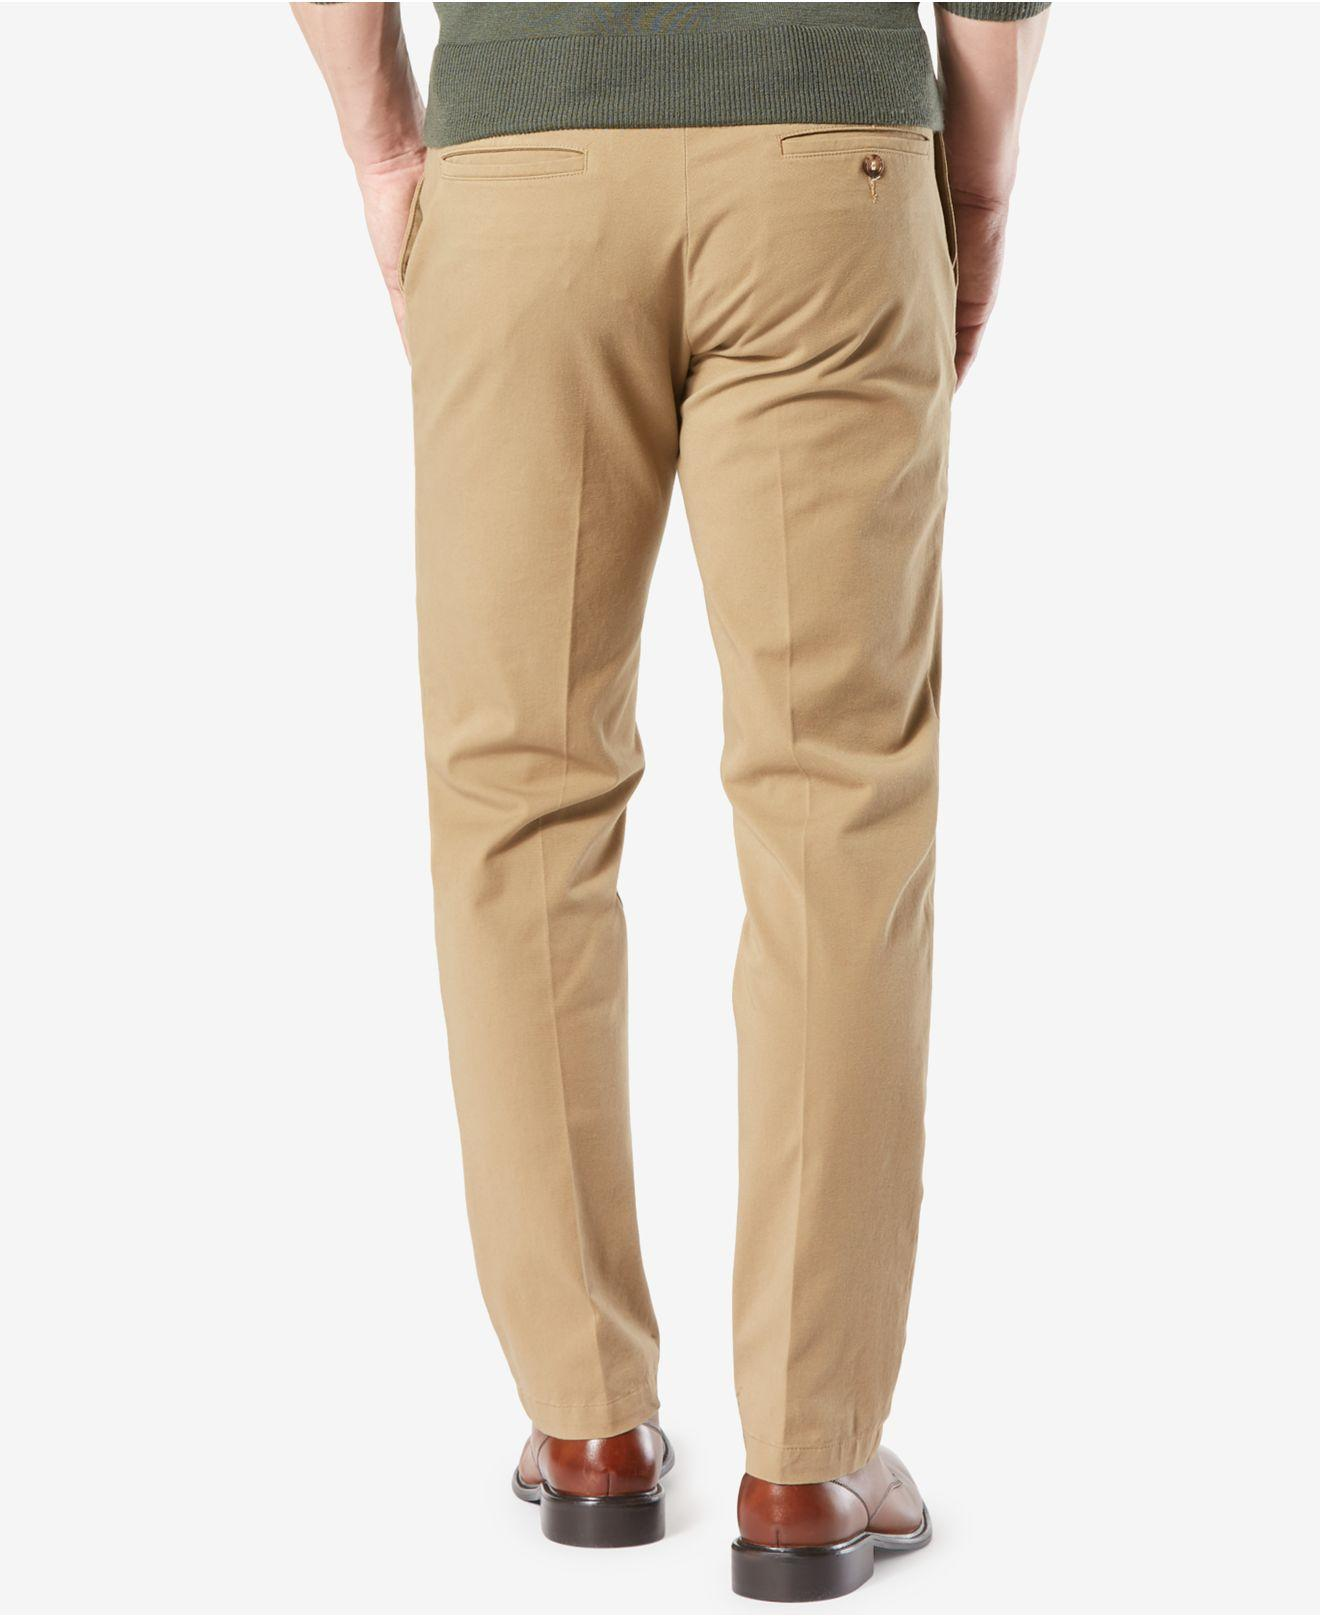 670aca1820 Dockers Workday Smart 360 Flex Straight Fit Khaki Stretch Pants D2 in  Natural for Men - Lyst